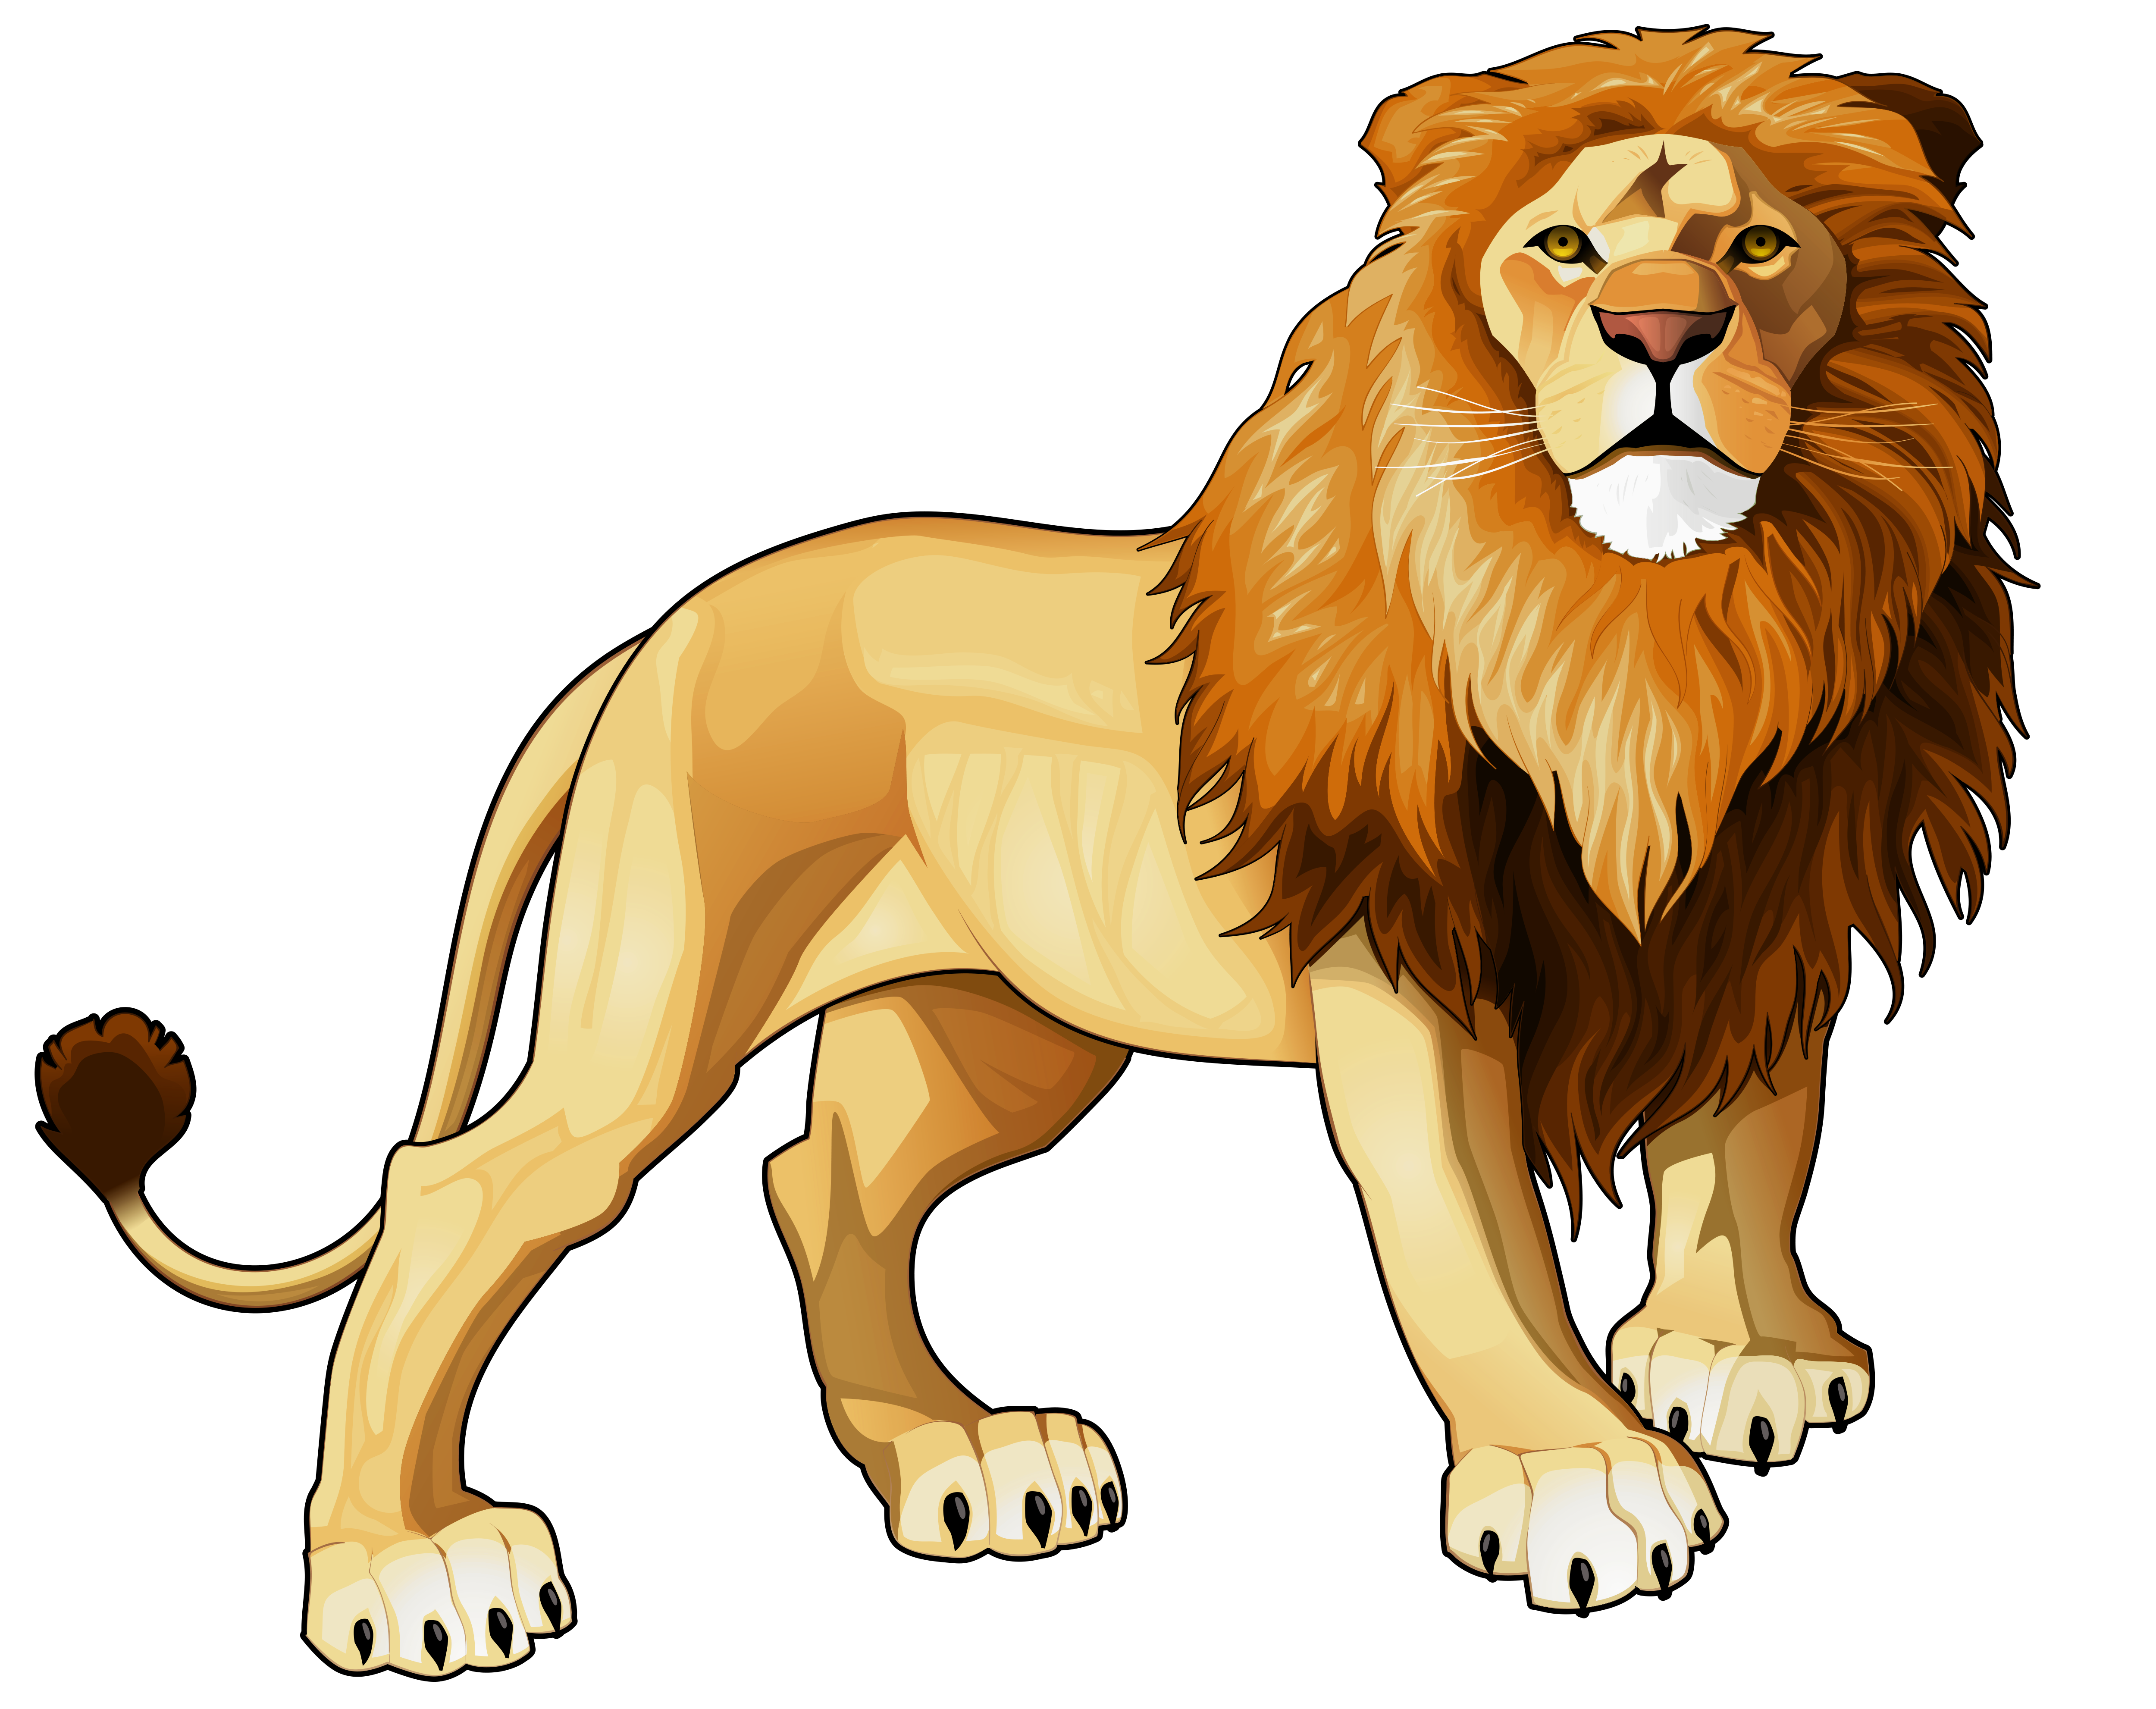 clipart freeuse stock Lion clipart christmas. Png best web.